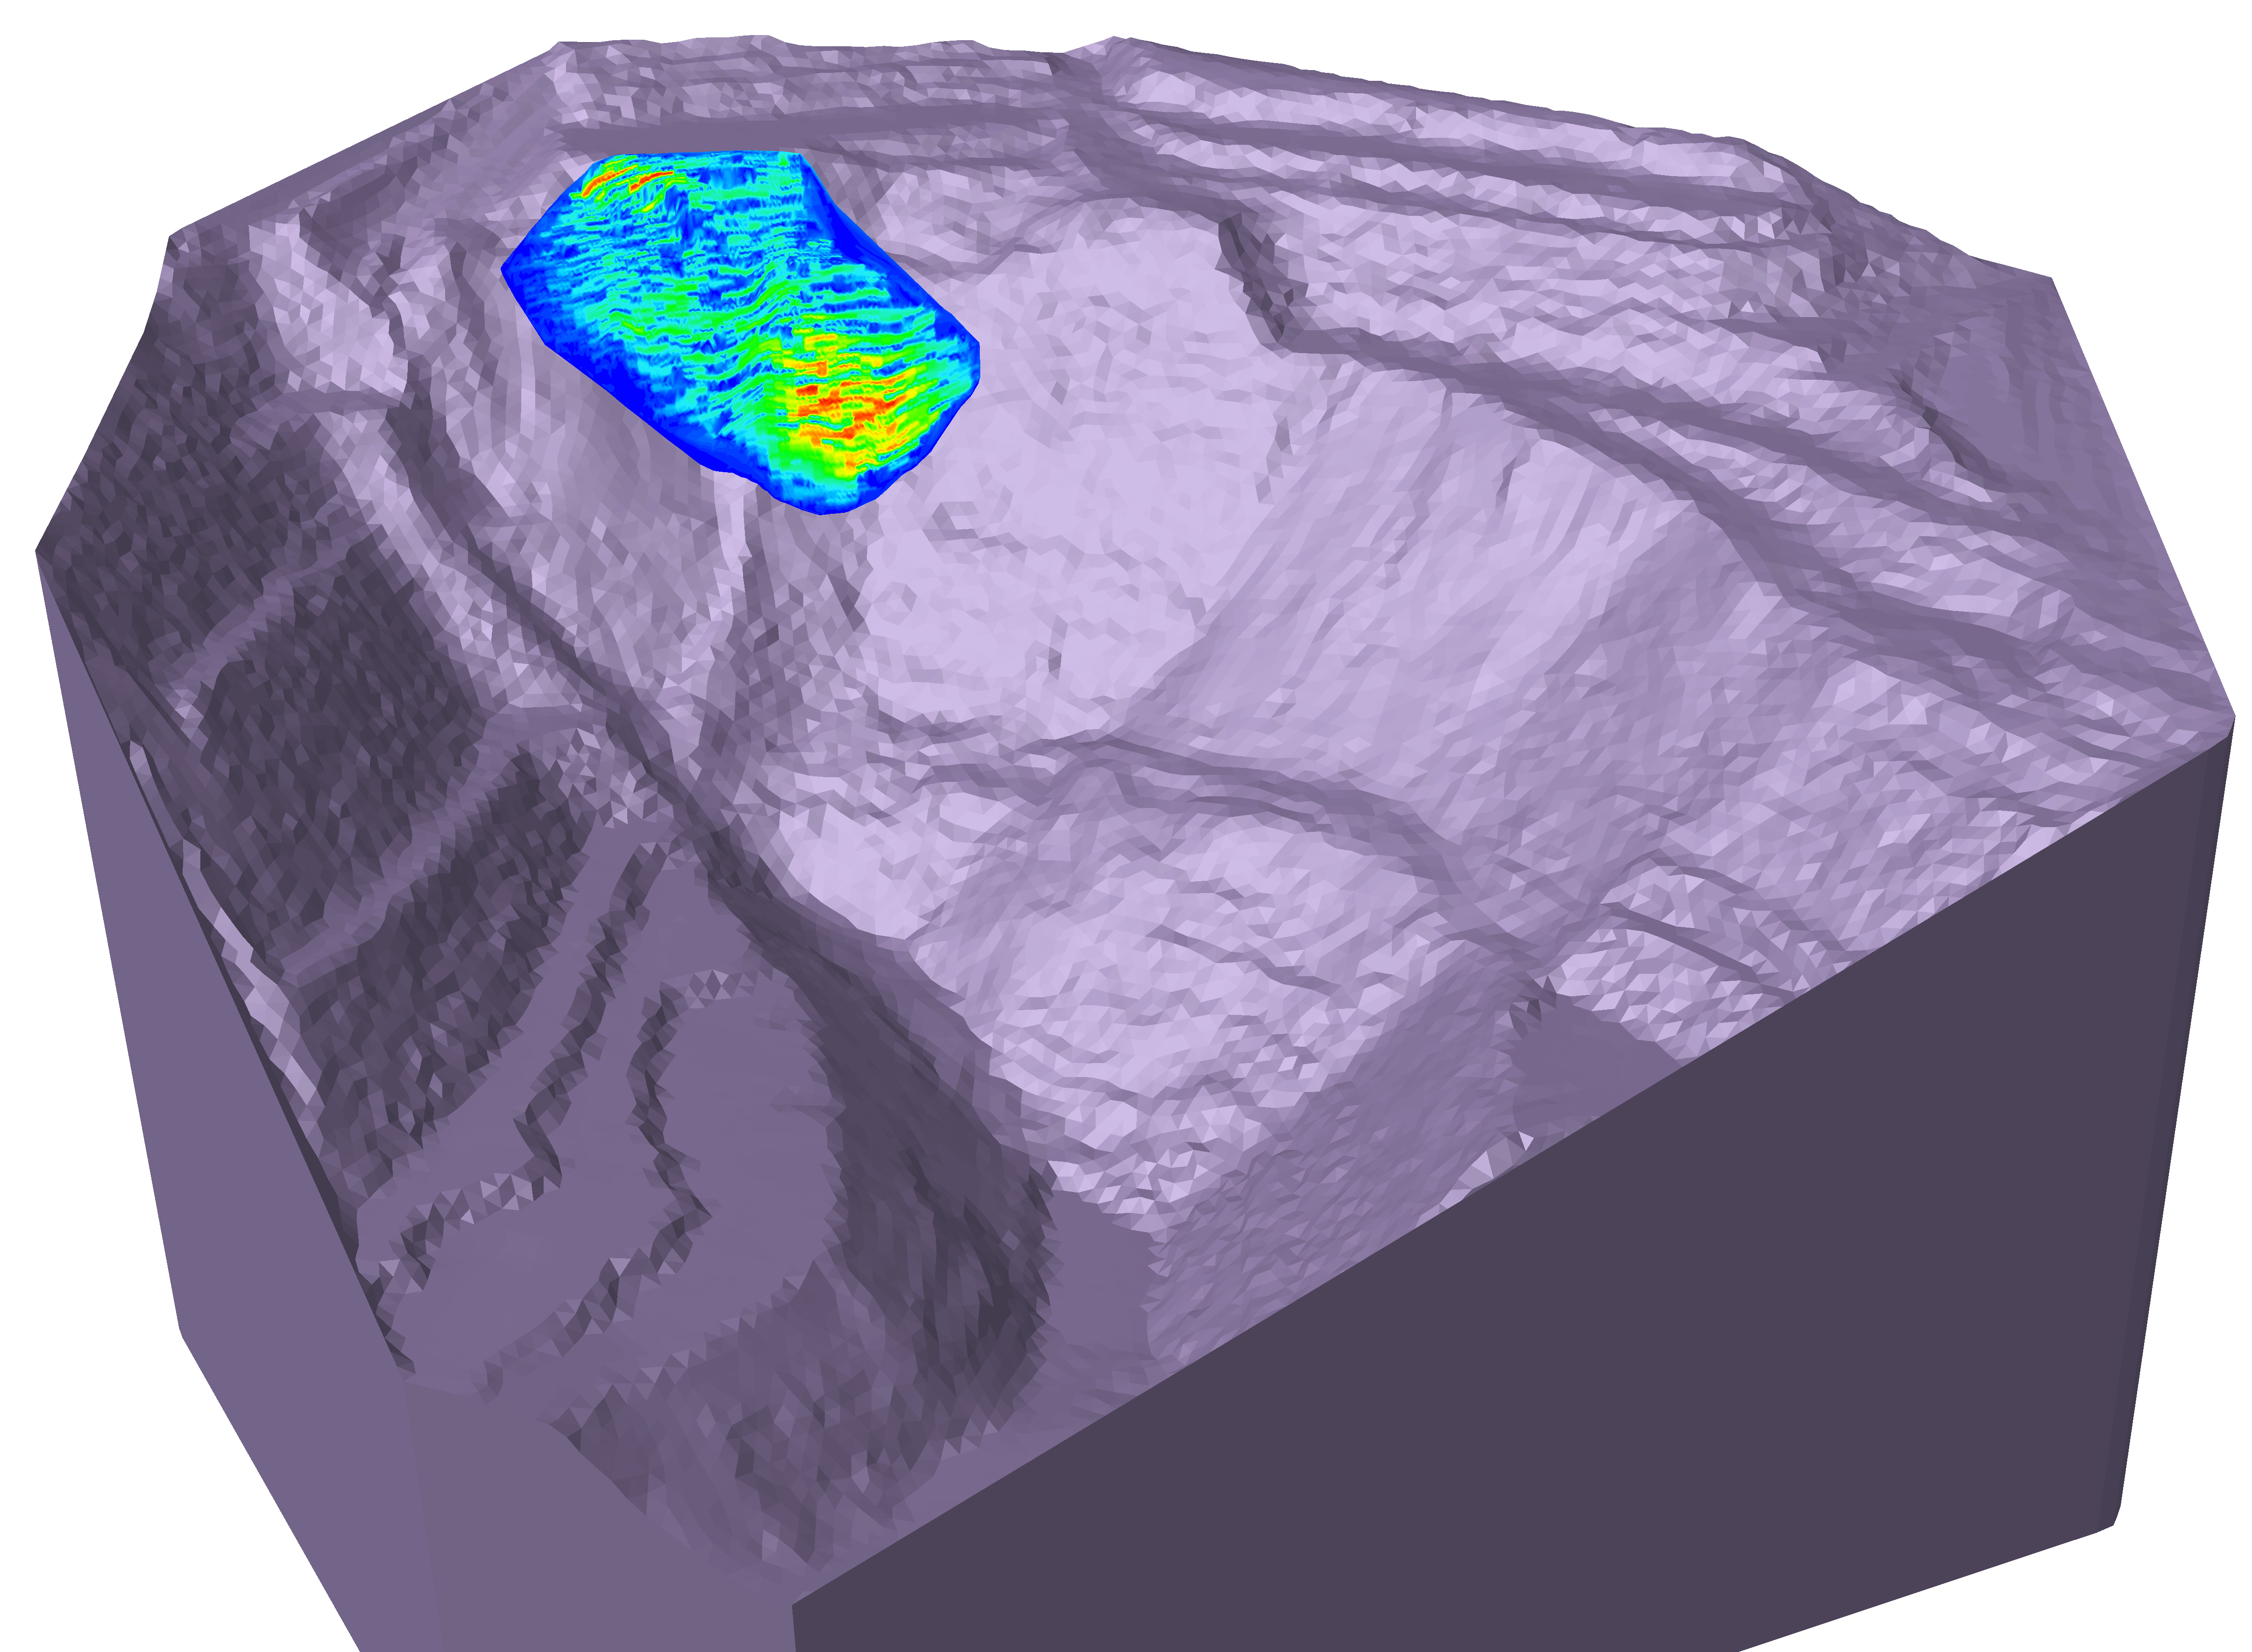 Figure 1. Overlay of radar map values on modeling results